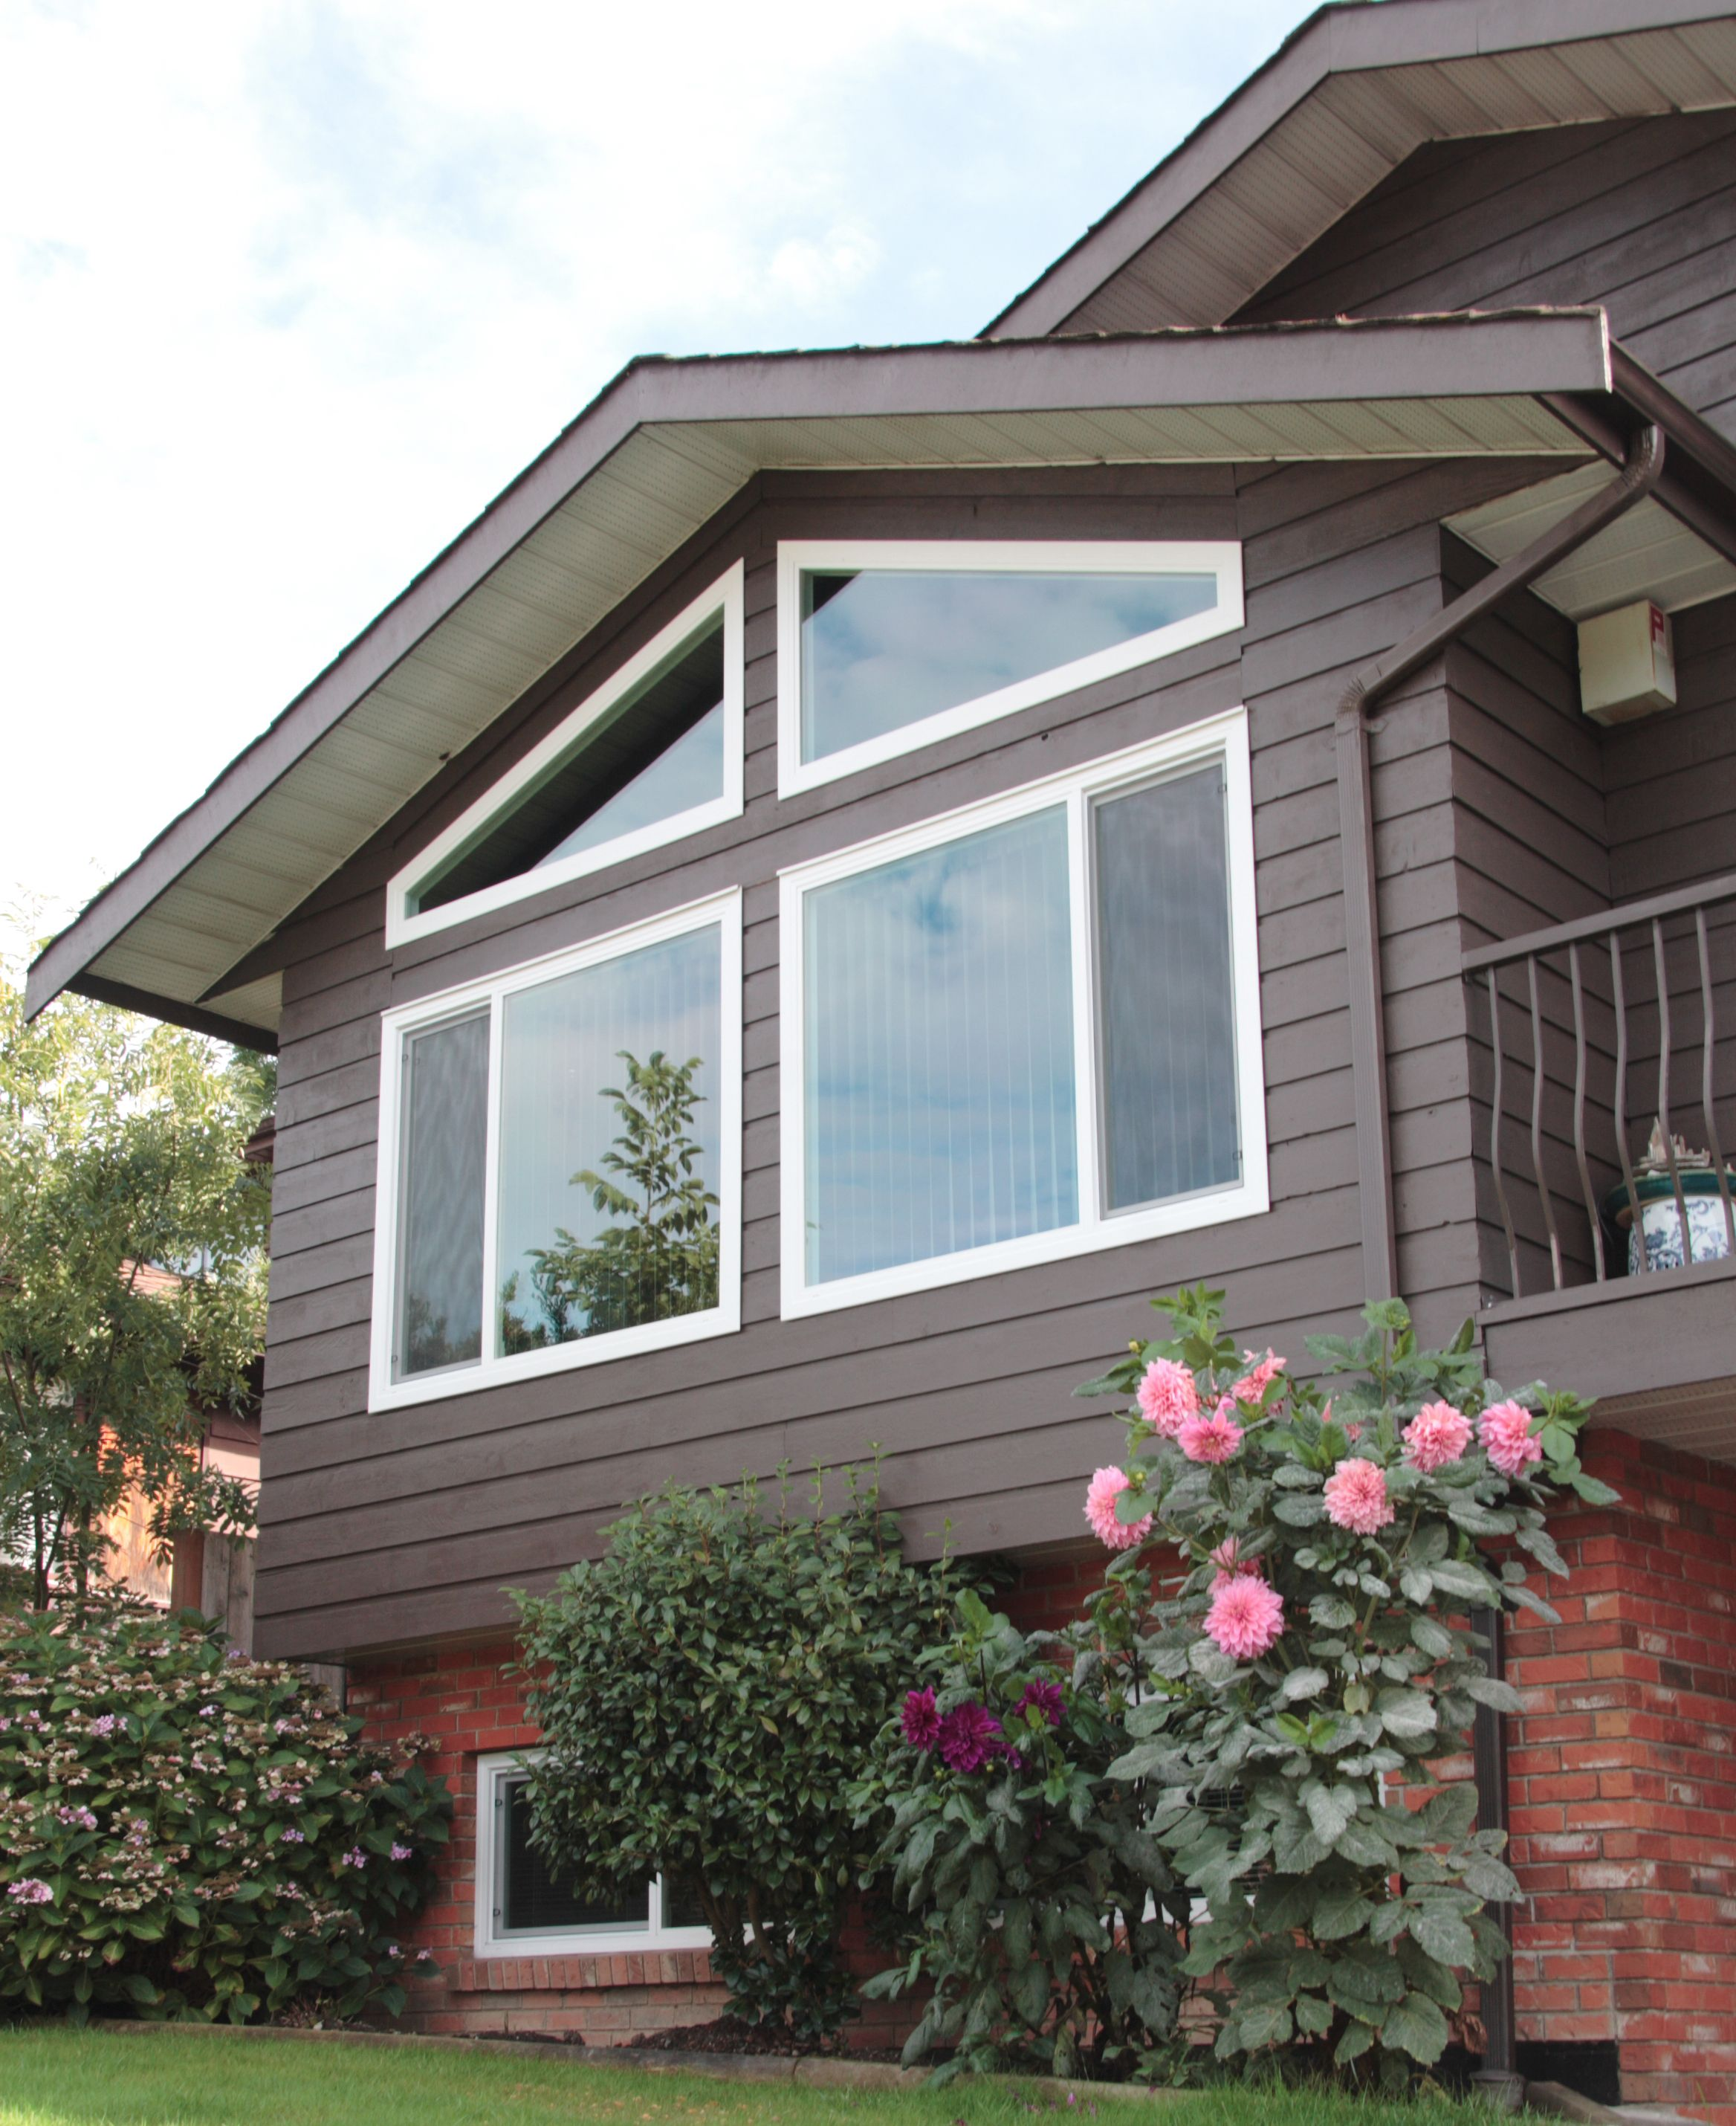 Rake Windows That Showcase Your Homes Architecture And Allow You To Add More Character To Your